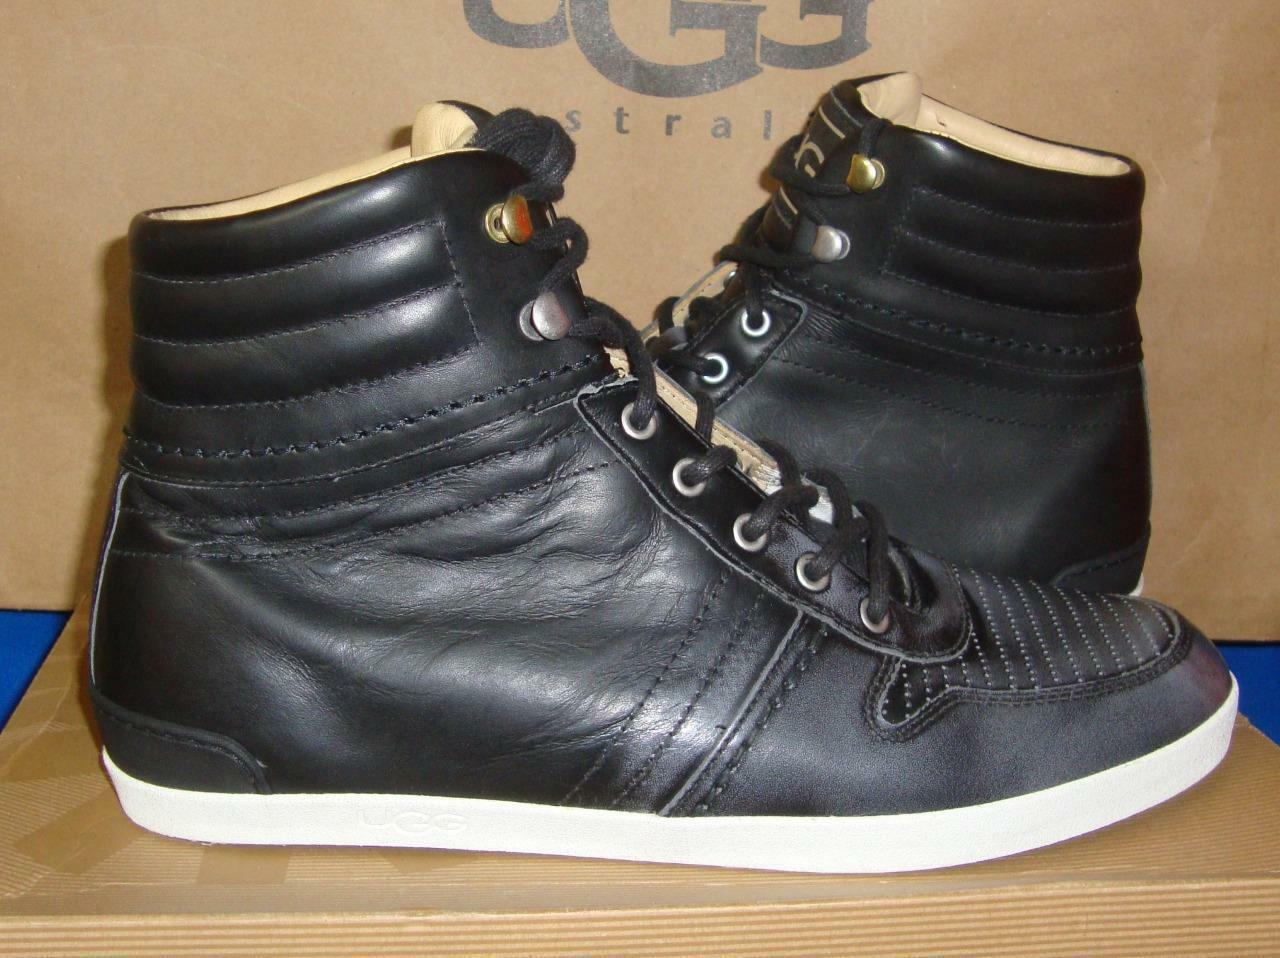 UGG Australia EMPIRE Men Two Tone Pew Leather Sneakers Size US 9 NIB #1000642